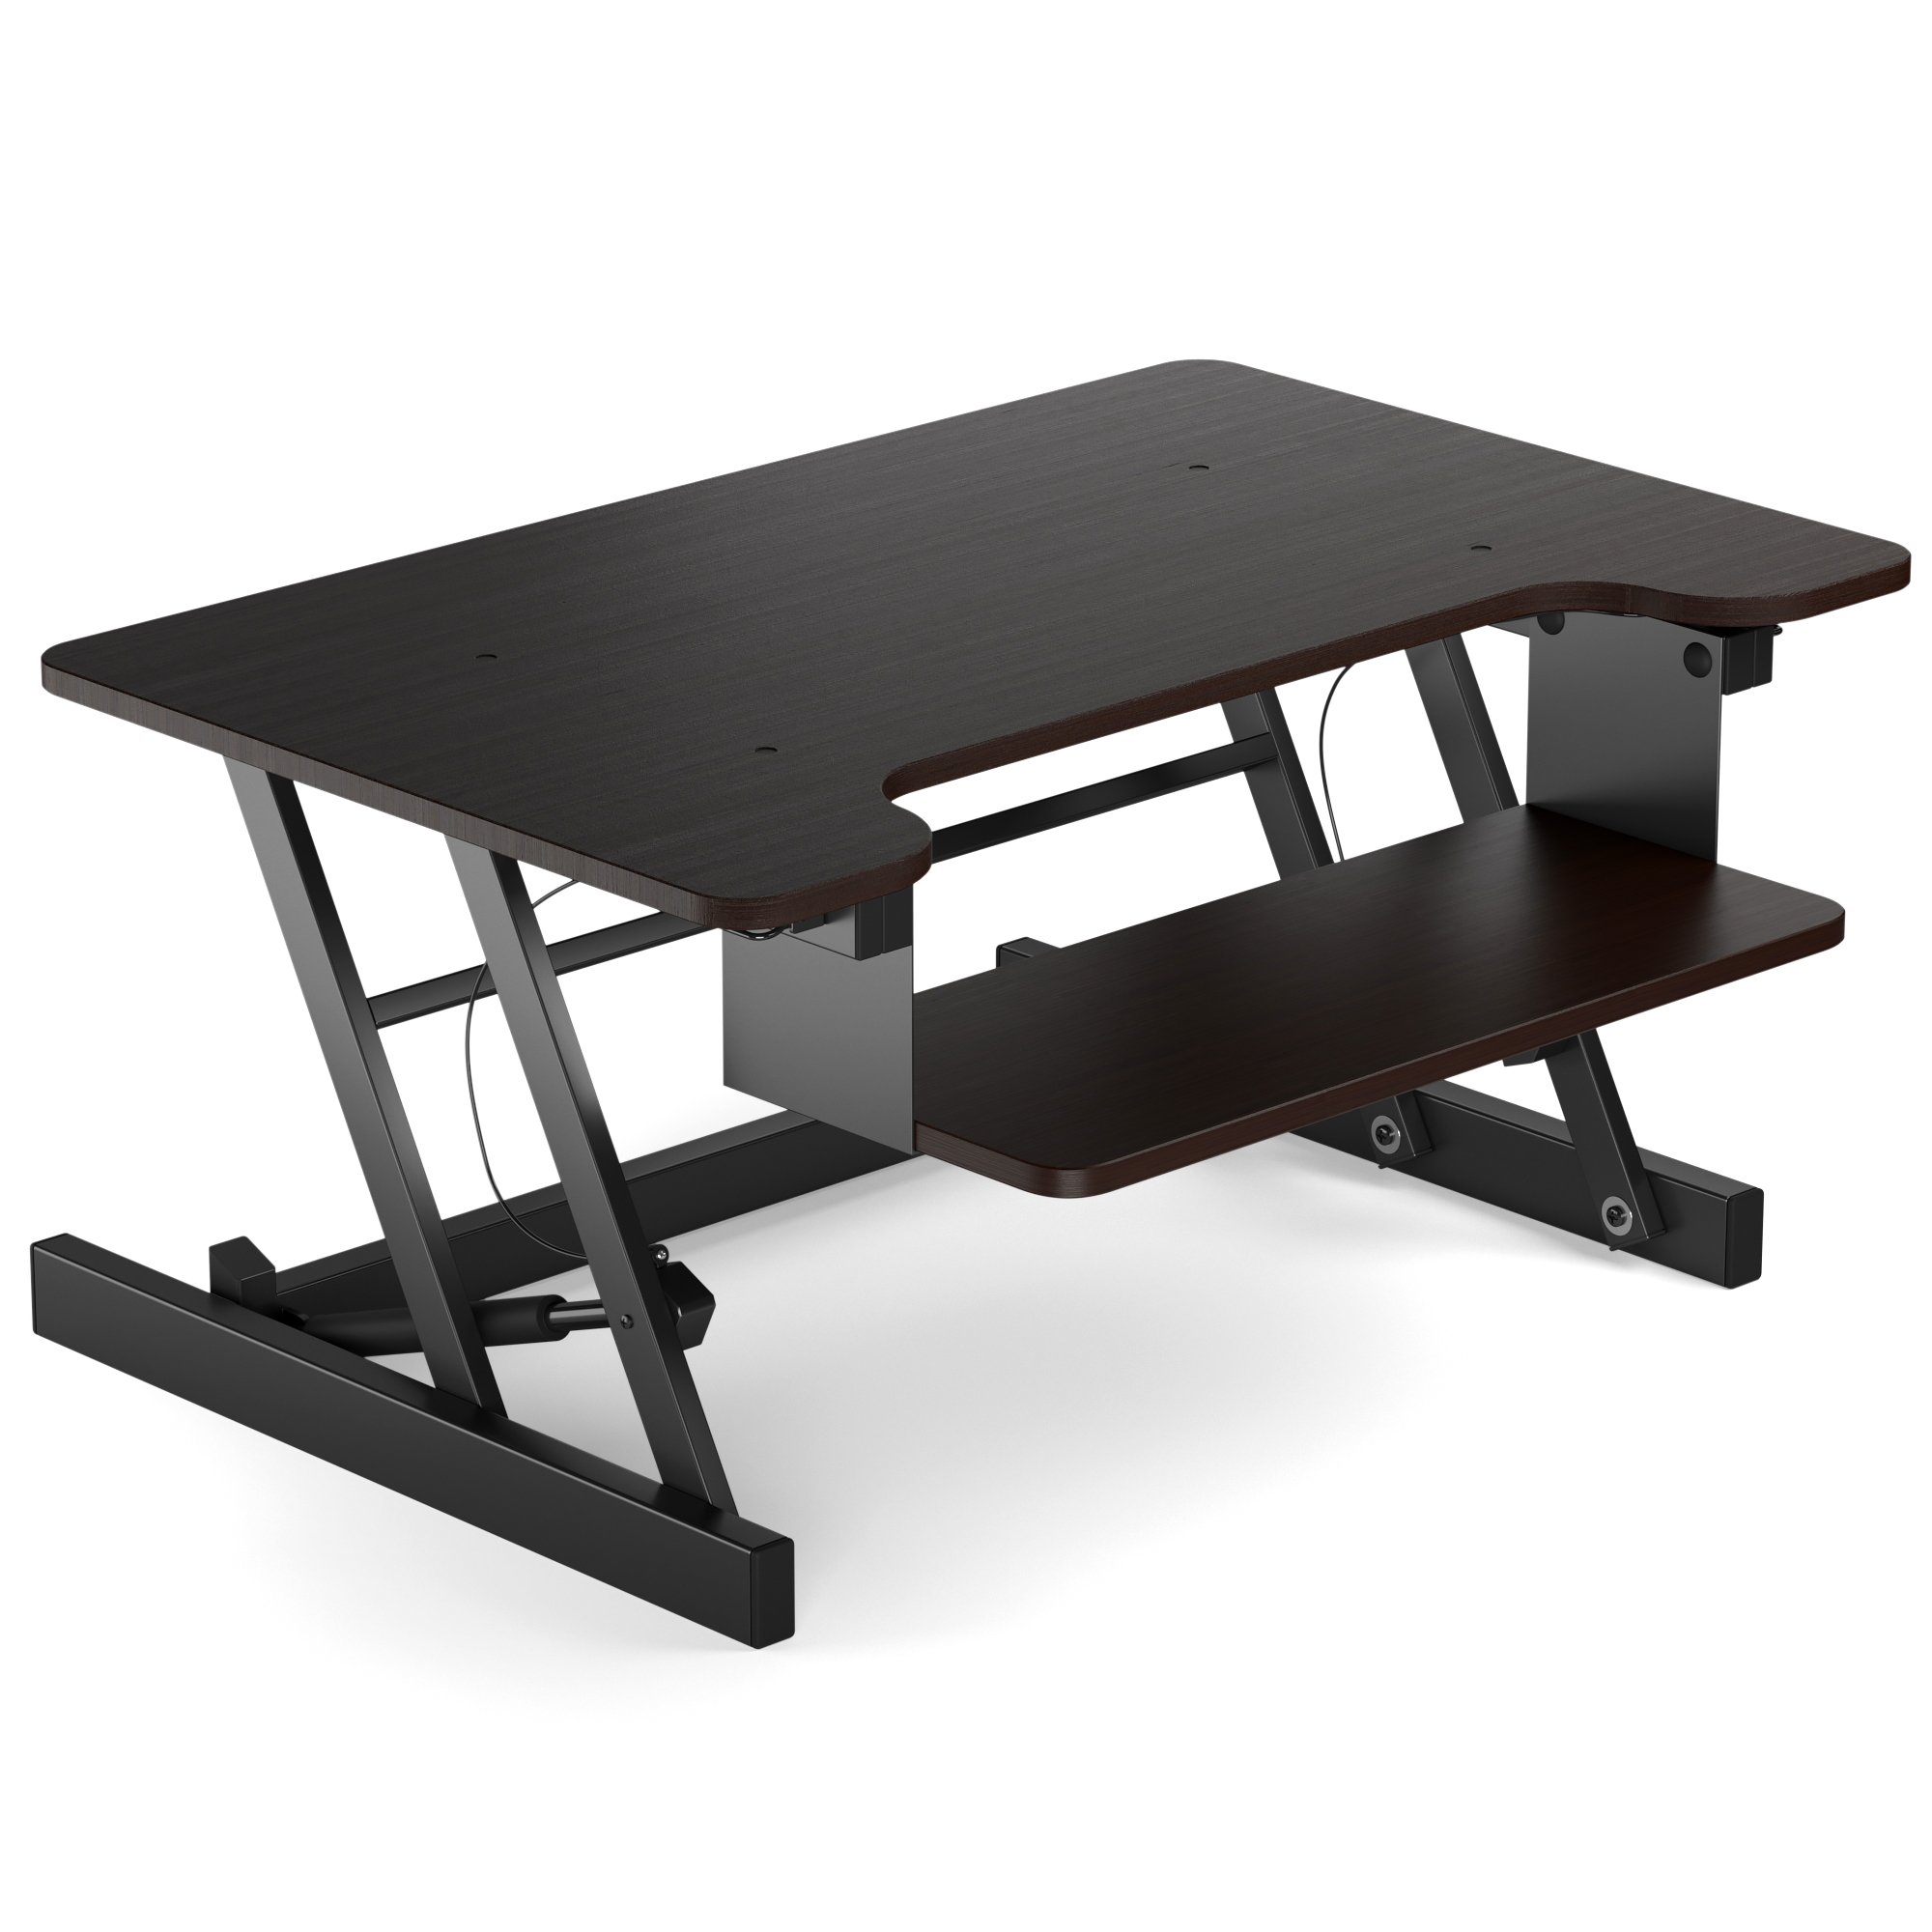 ERGONOMIC HEIGHT ADJUSTABLE Standing Desk - TWO TIER Computer Riser Converter with Easy Sit – To - Stand Transition and Vice - Versa (Black)